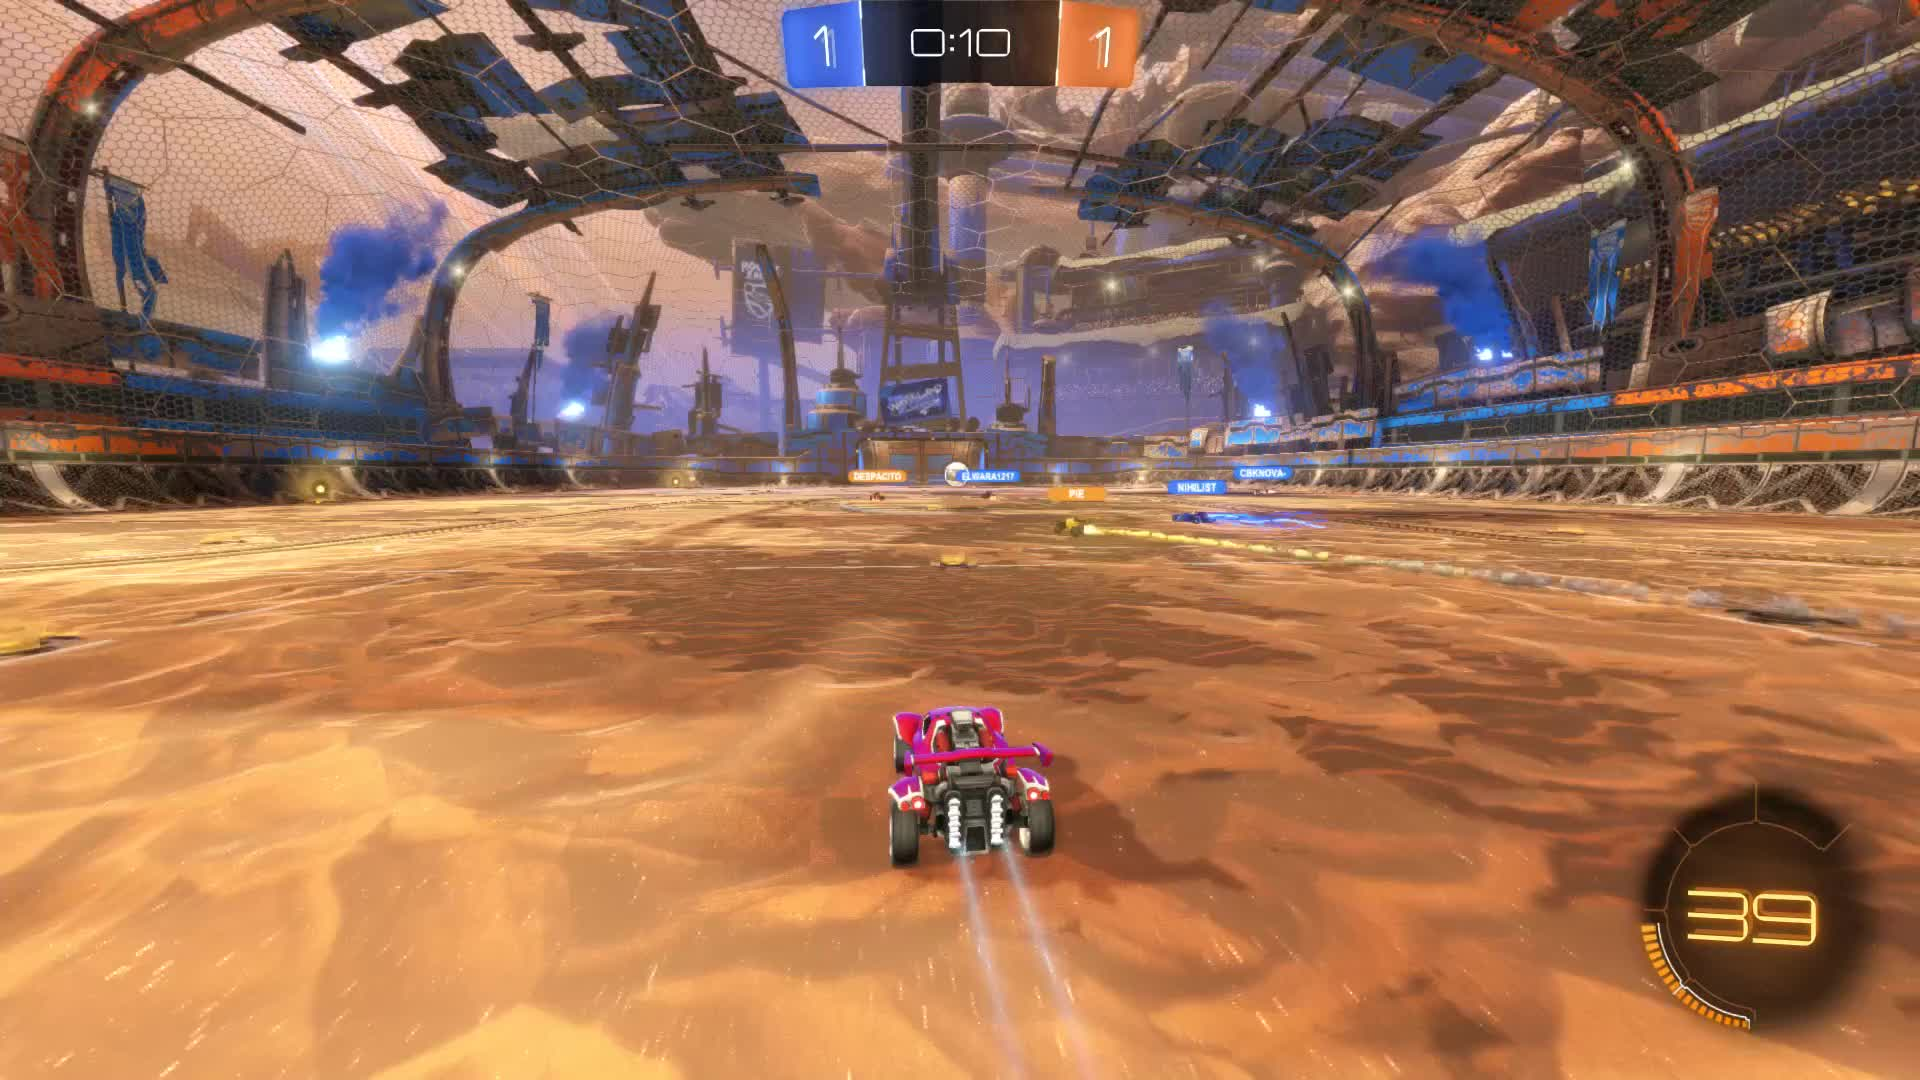 Gif Your Game, GifYourGame, Goal, Rocket League, RocketLeague, noflight, Goal 3: noflight GIFs